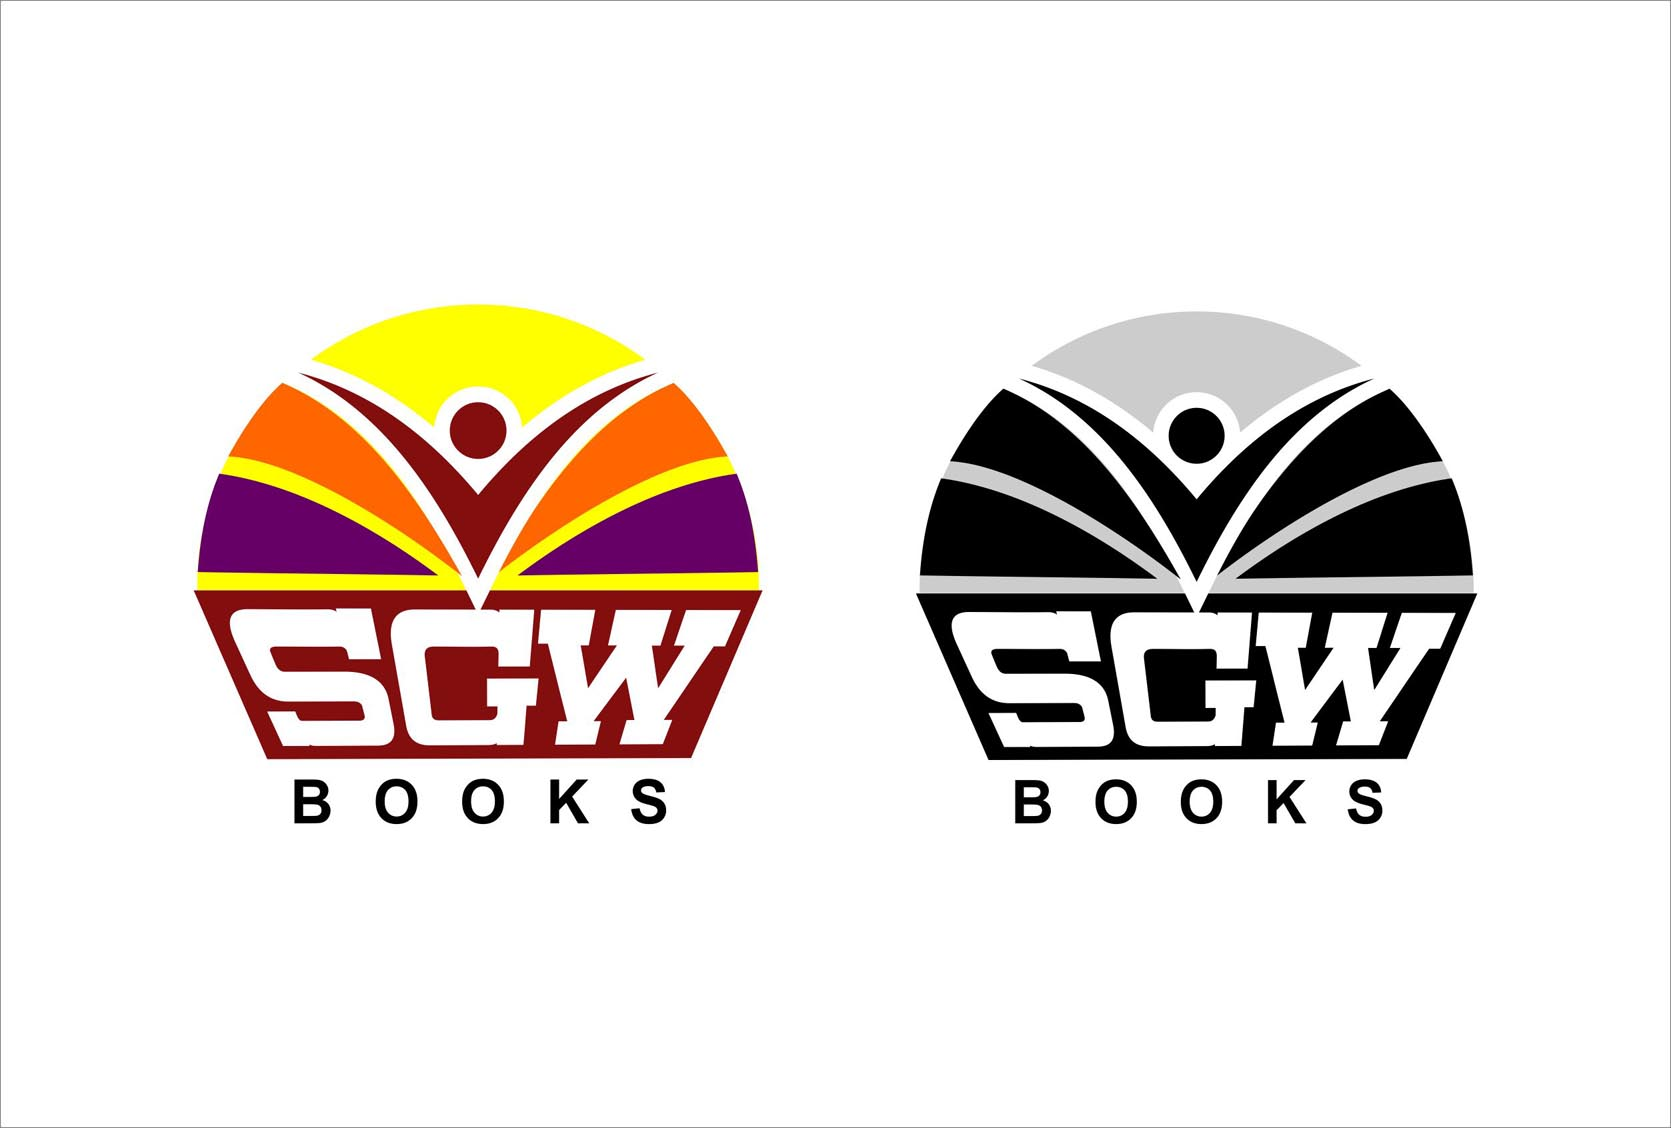 Logo Design by Niraj Dhimmar - Entry No. 67 in the Logo Design Contest SGW Books Logo Design.